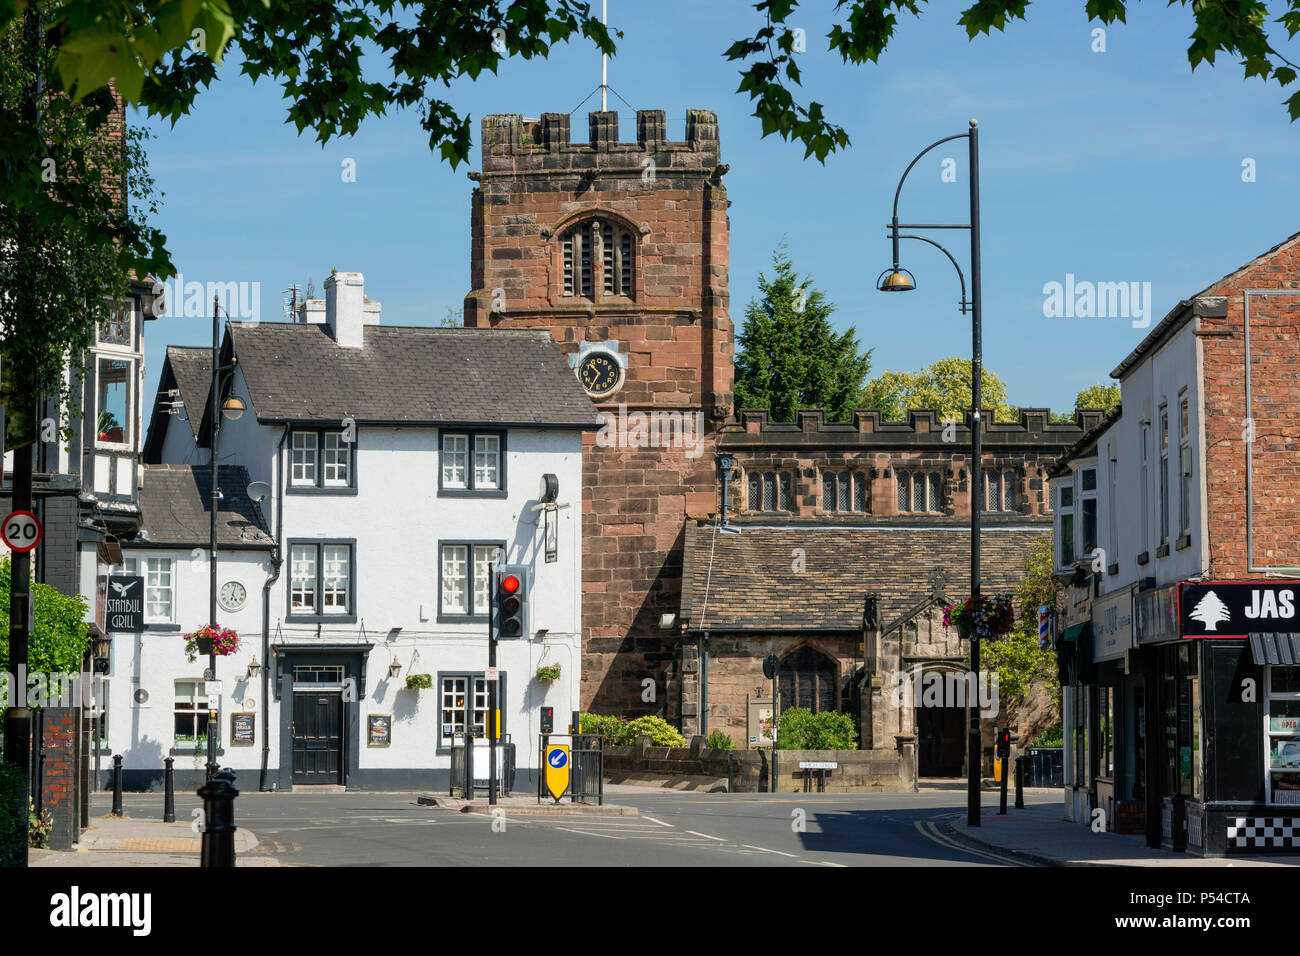 The White Hart Tavern and St Mary's Church in Cheadle, Cheshire, UK. - Stock Image